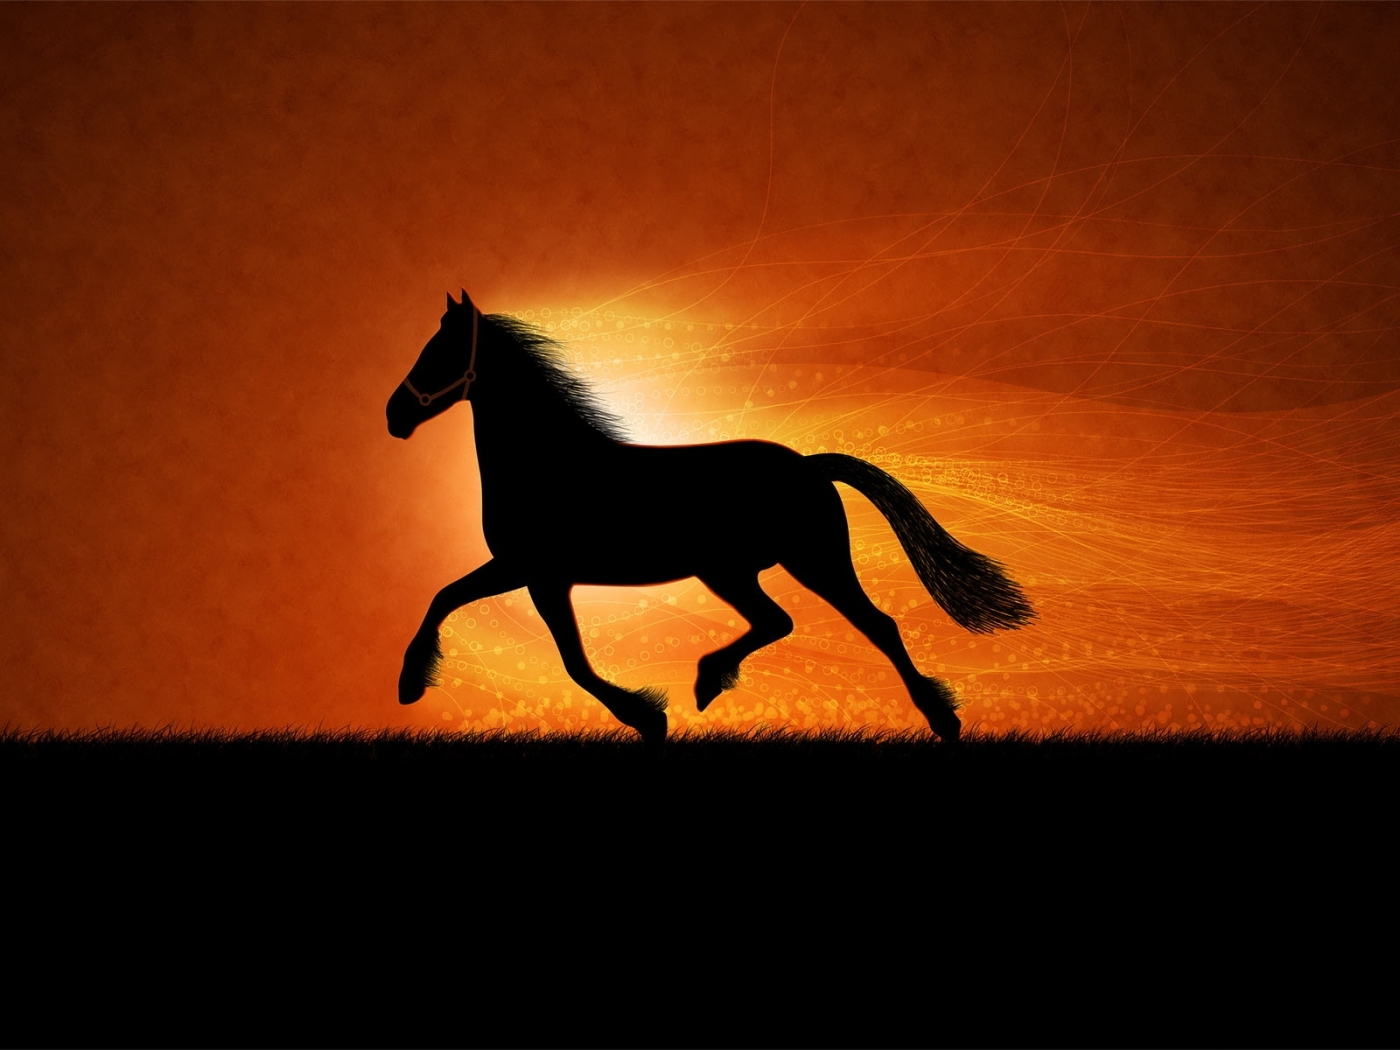 47409 download wallpaper Animals, Horses screensavers and pictures for free